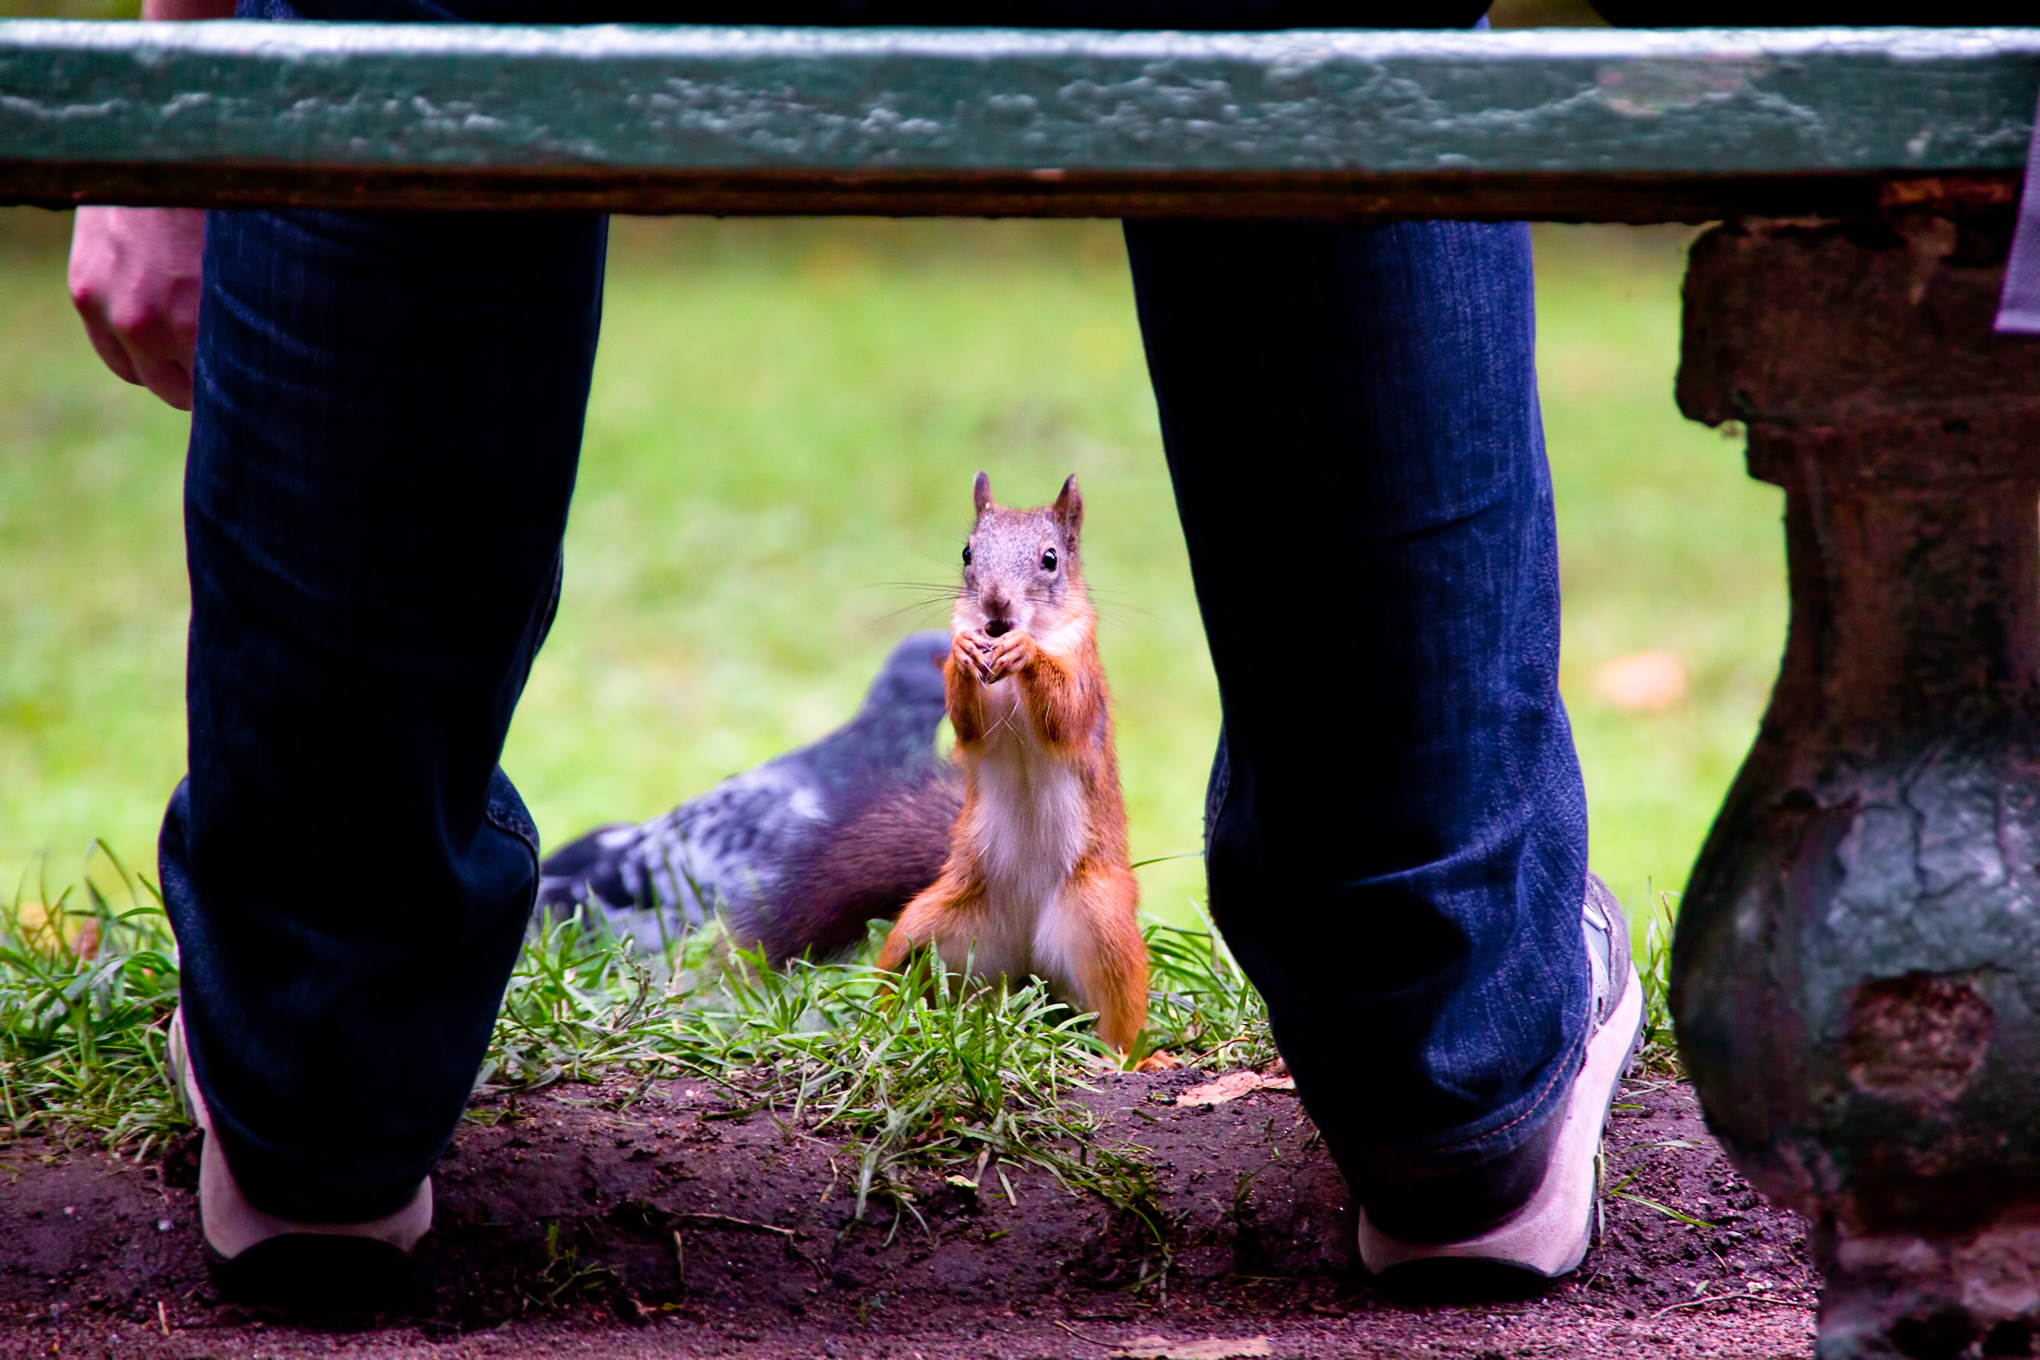 Squirrel, Animal, Close-up, Cute, Looking, HQ Photo